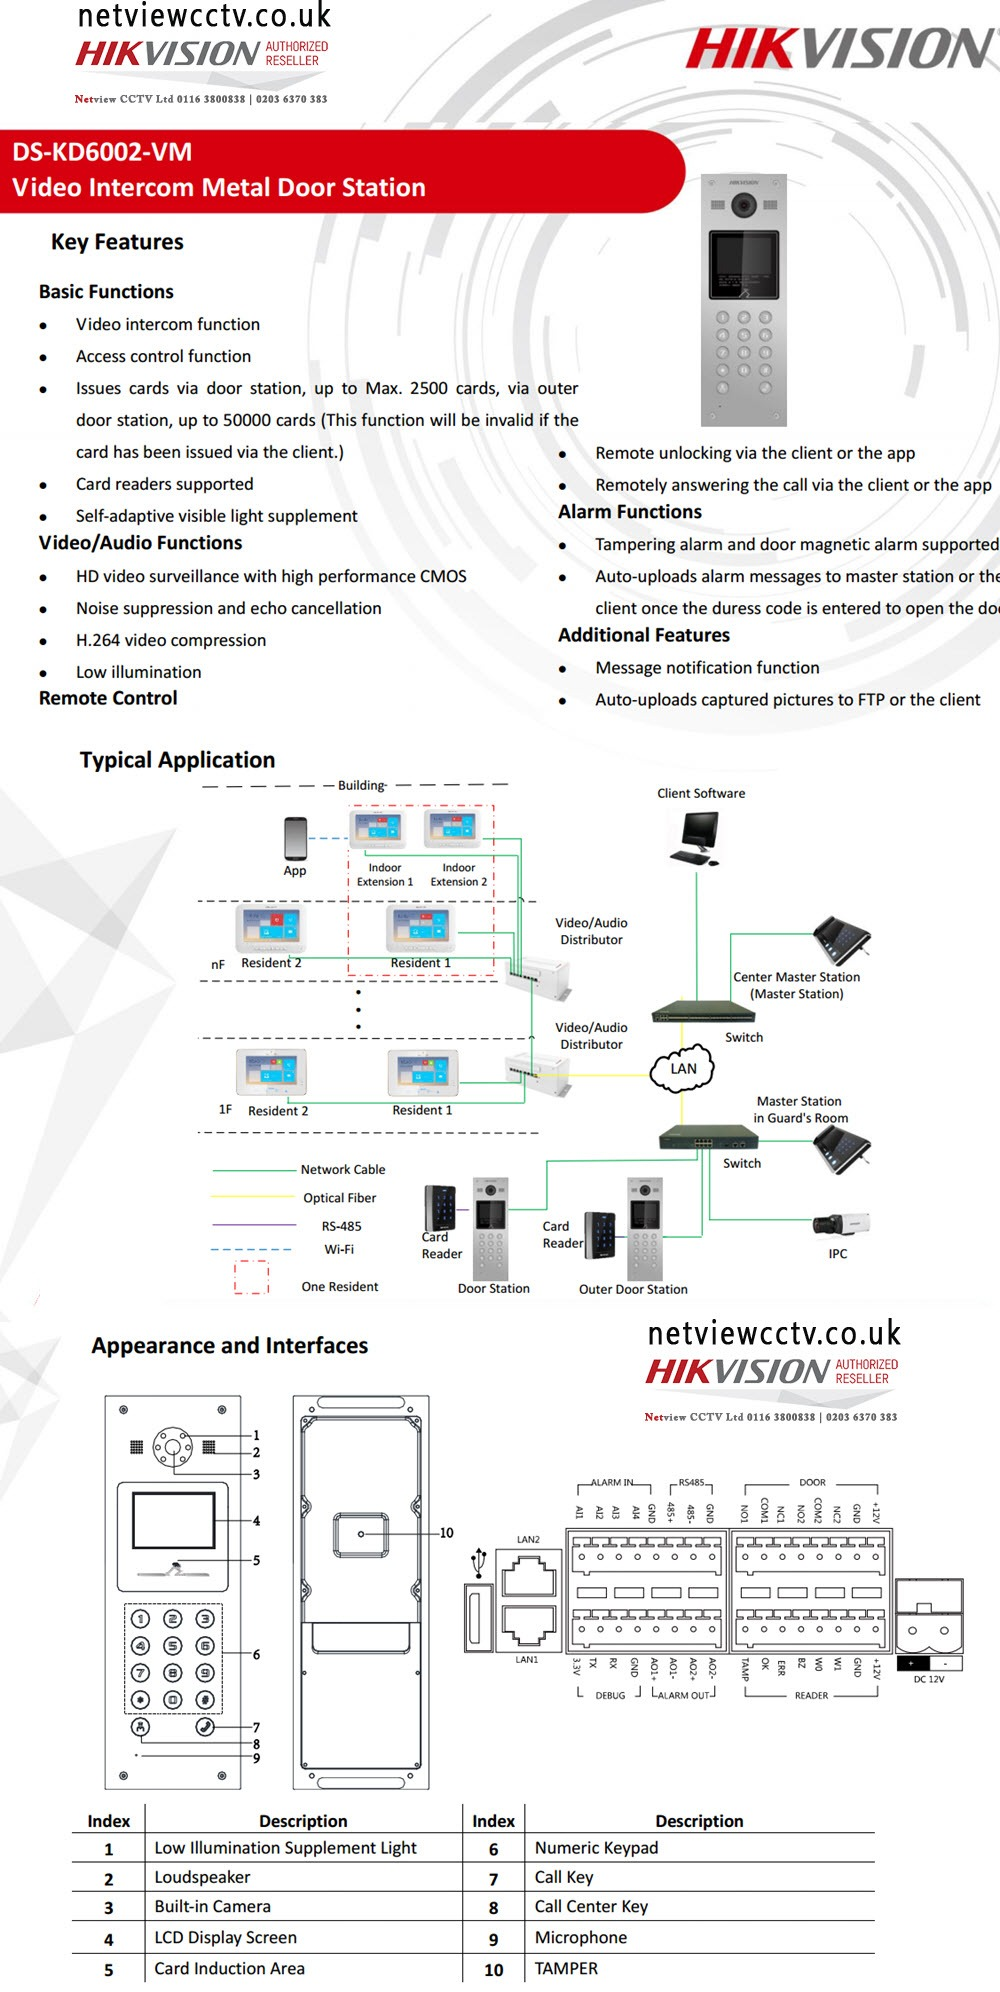 Hikvision DS-KD6002-VM Video Intercom specifications